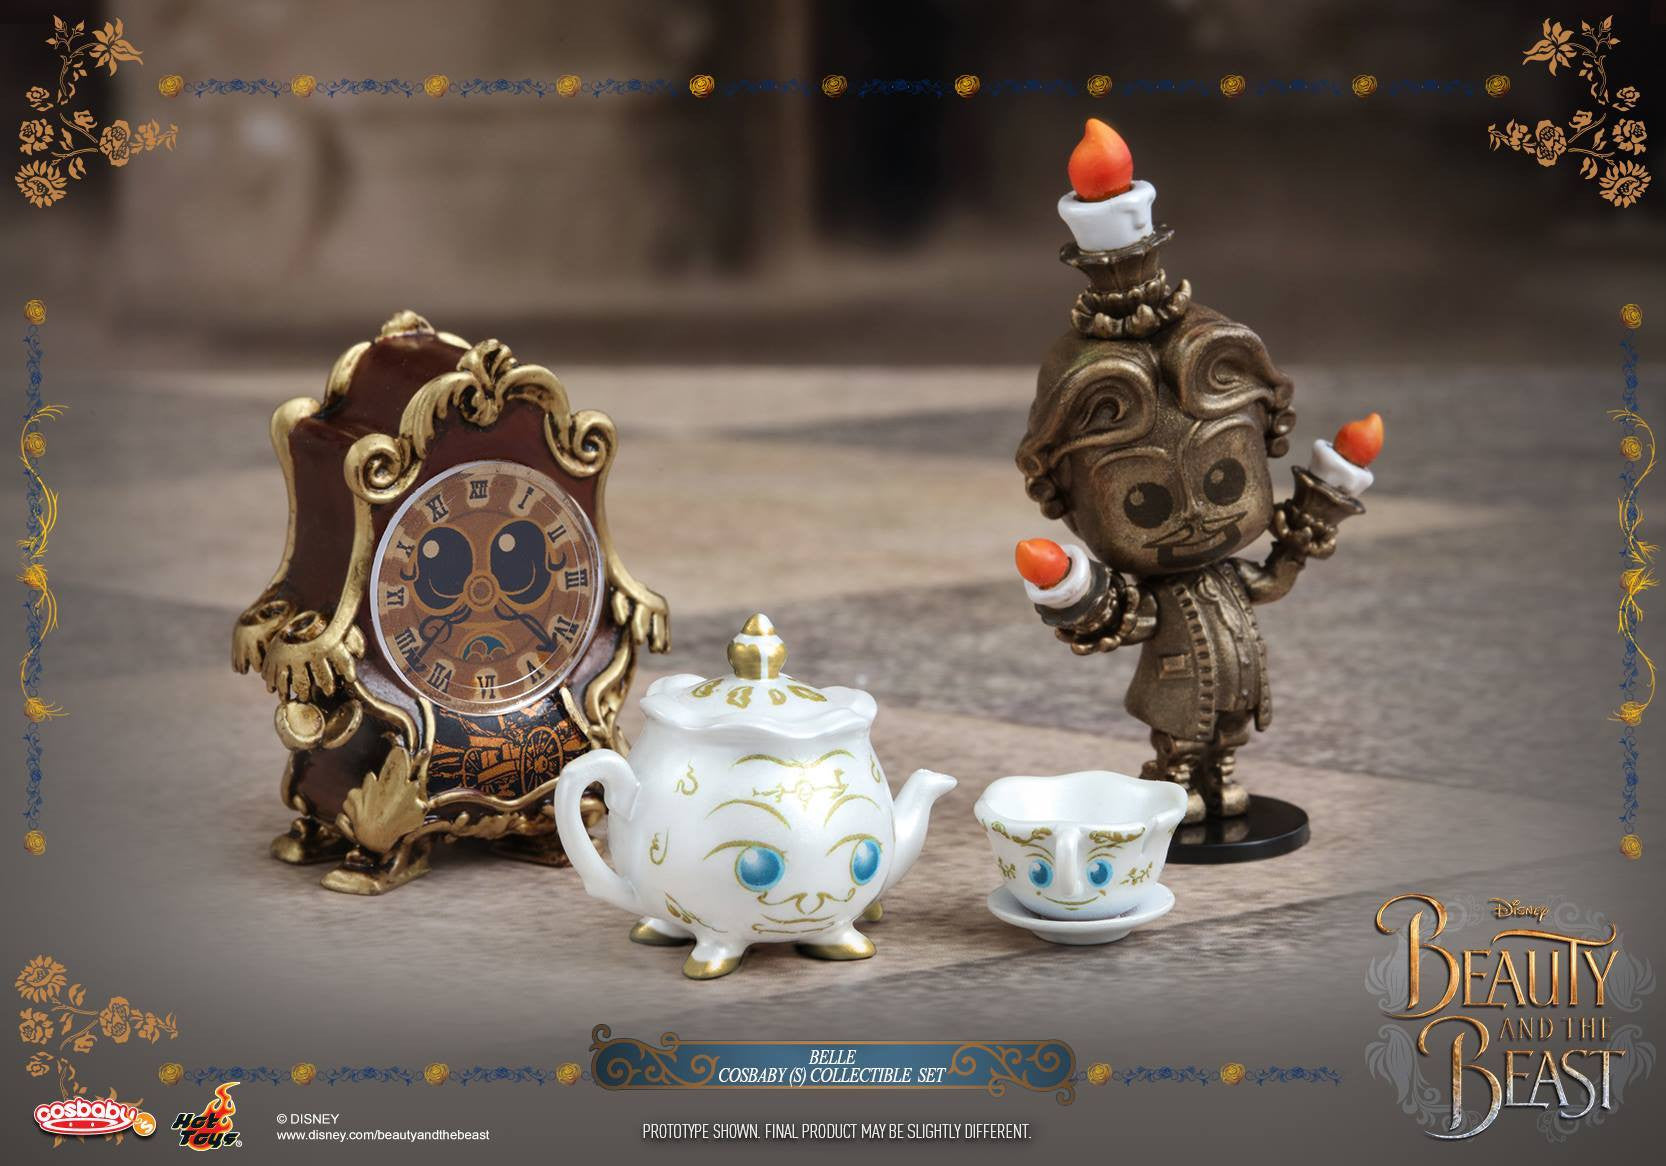 Hot Toys - COSB353 - Beauty and the Beast - Belle Cosbaby Set (includes Lumière, Cogsworth, Mrs. Potts & Chip)